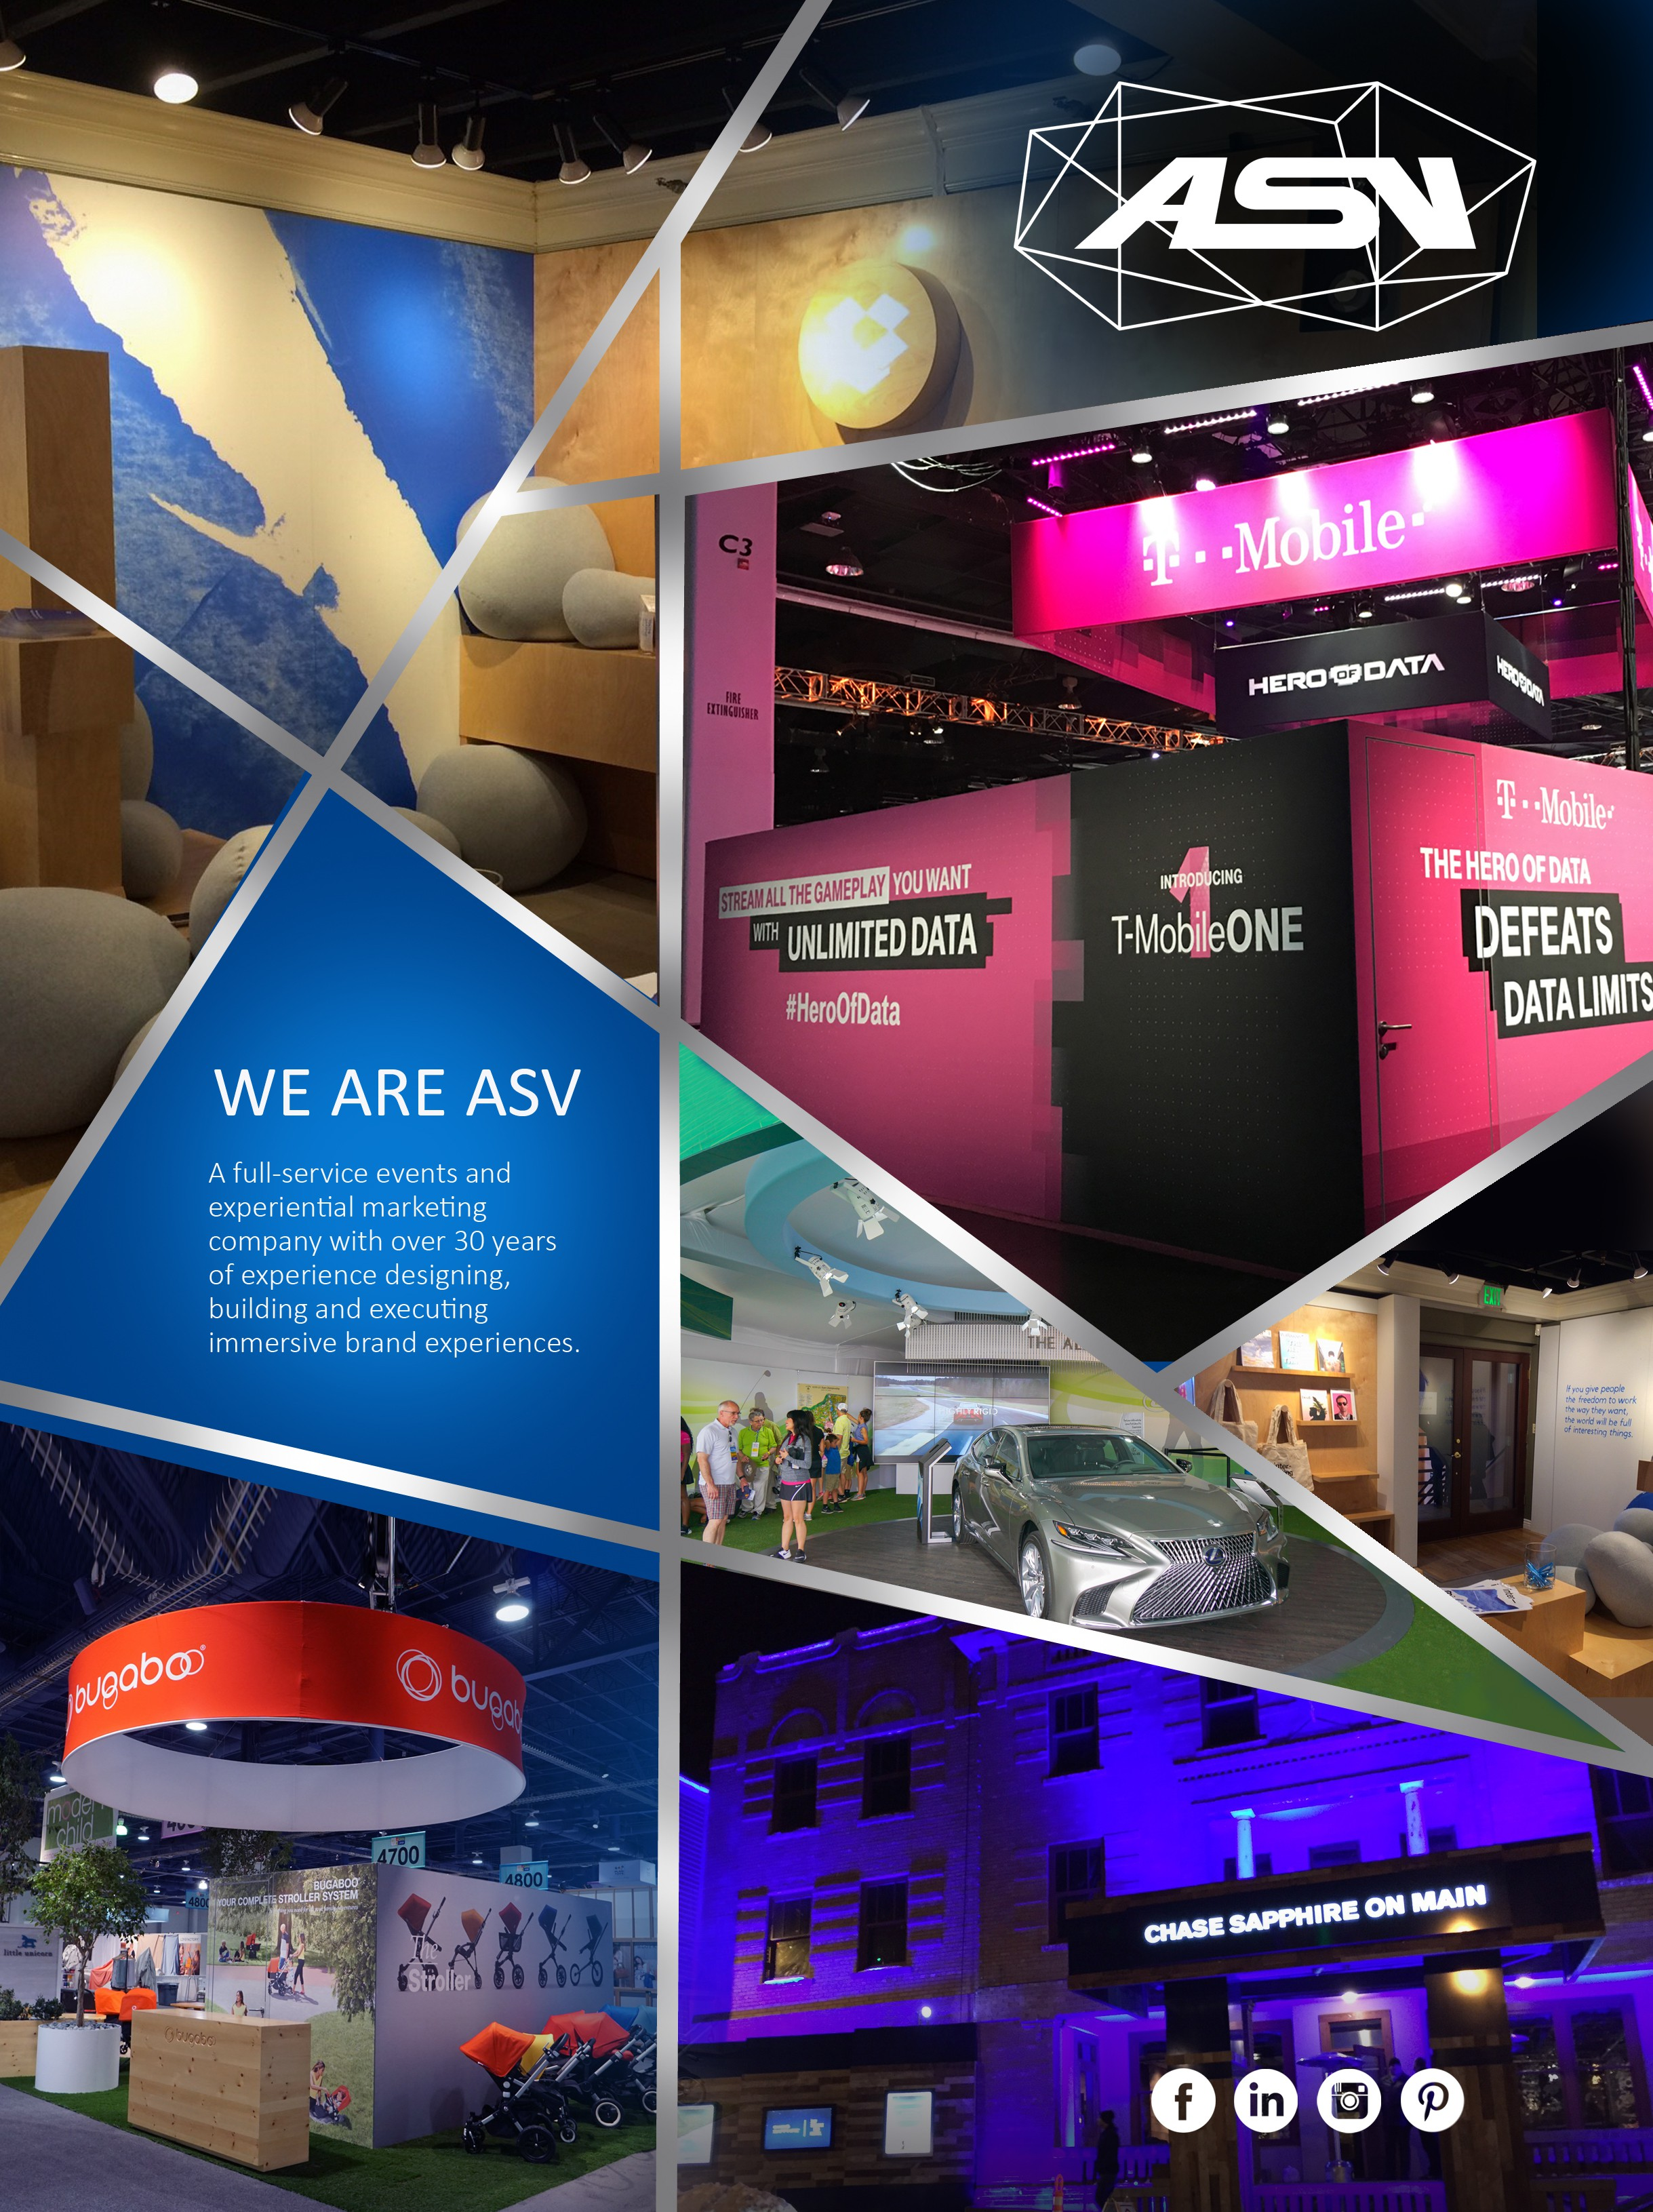 Create a one page print ad for Experiential Marketing company, ASV